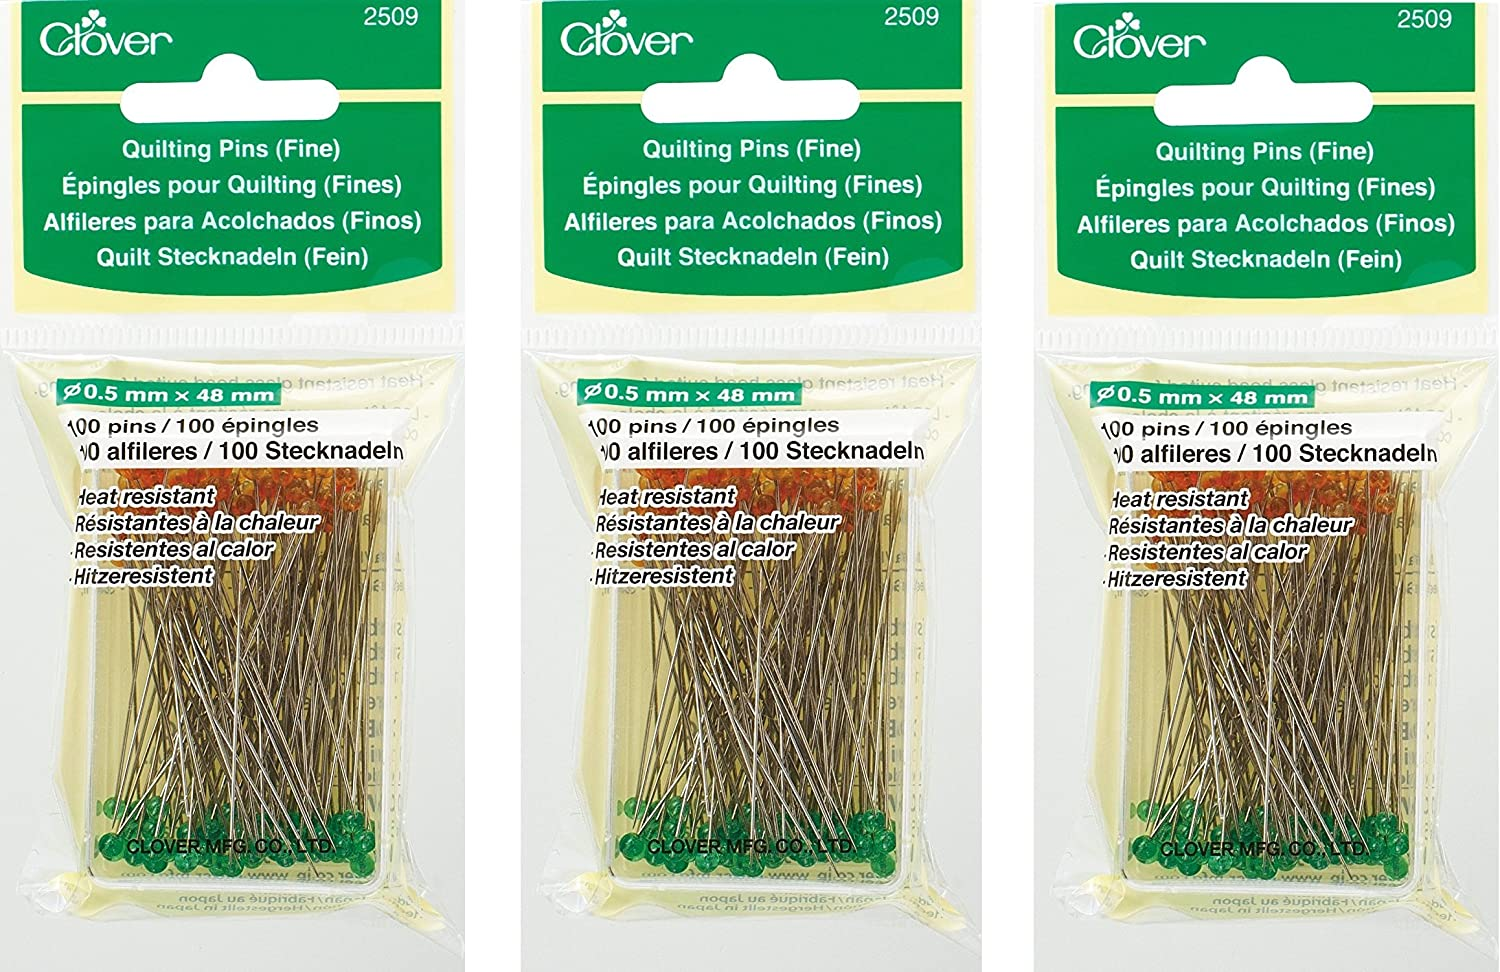 Clover Quilting Pins, Fine (3 Pack)